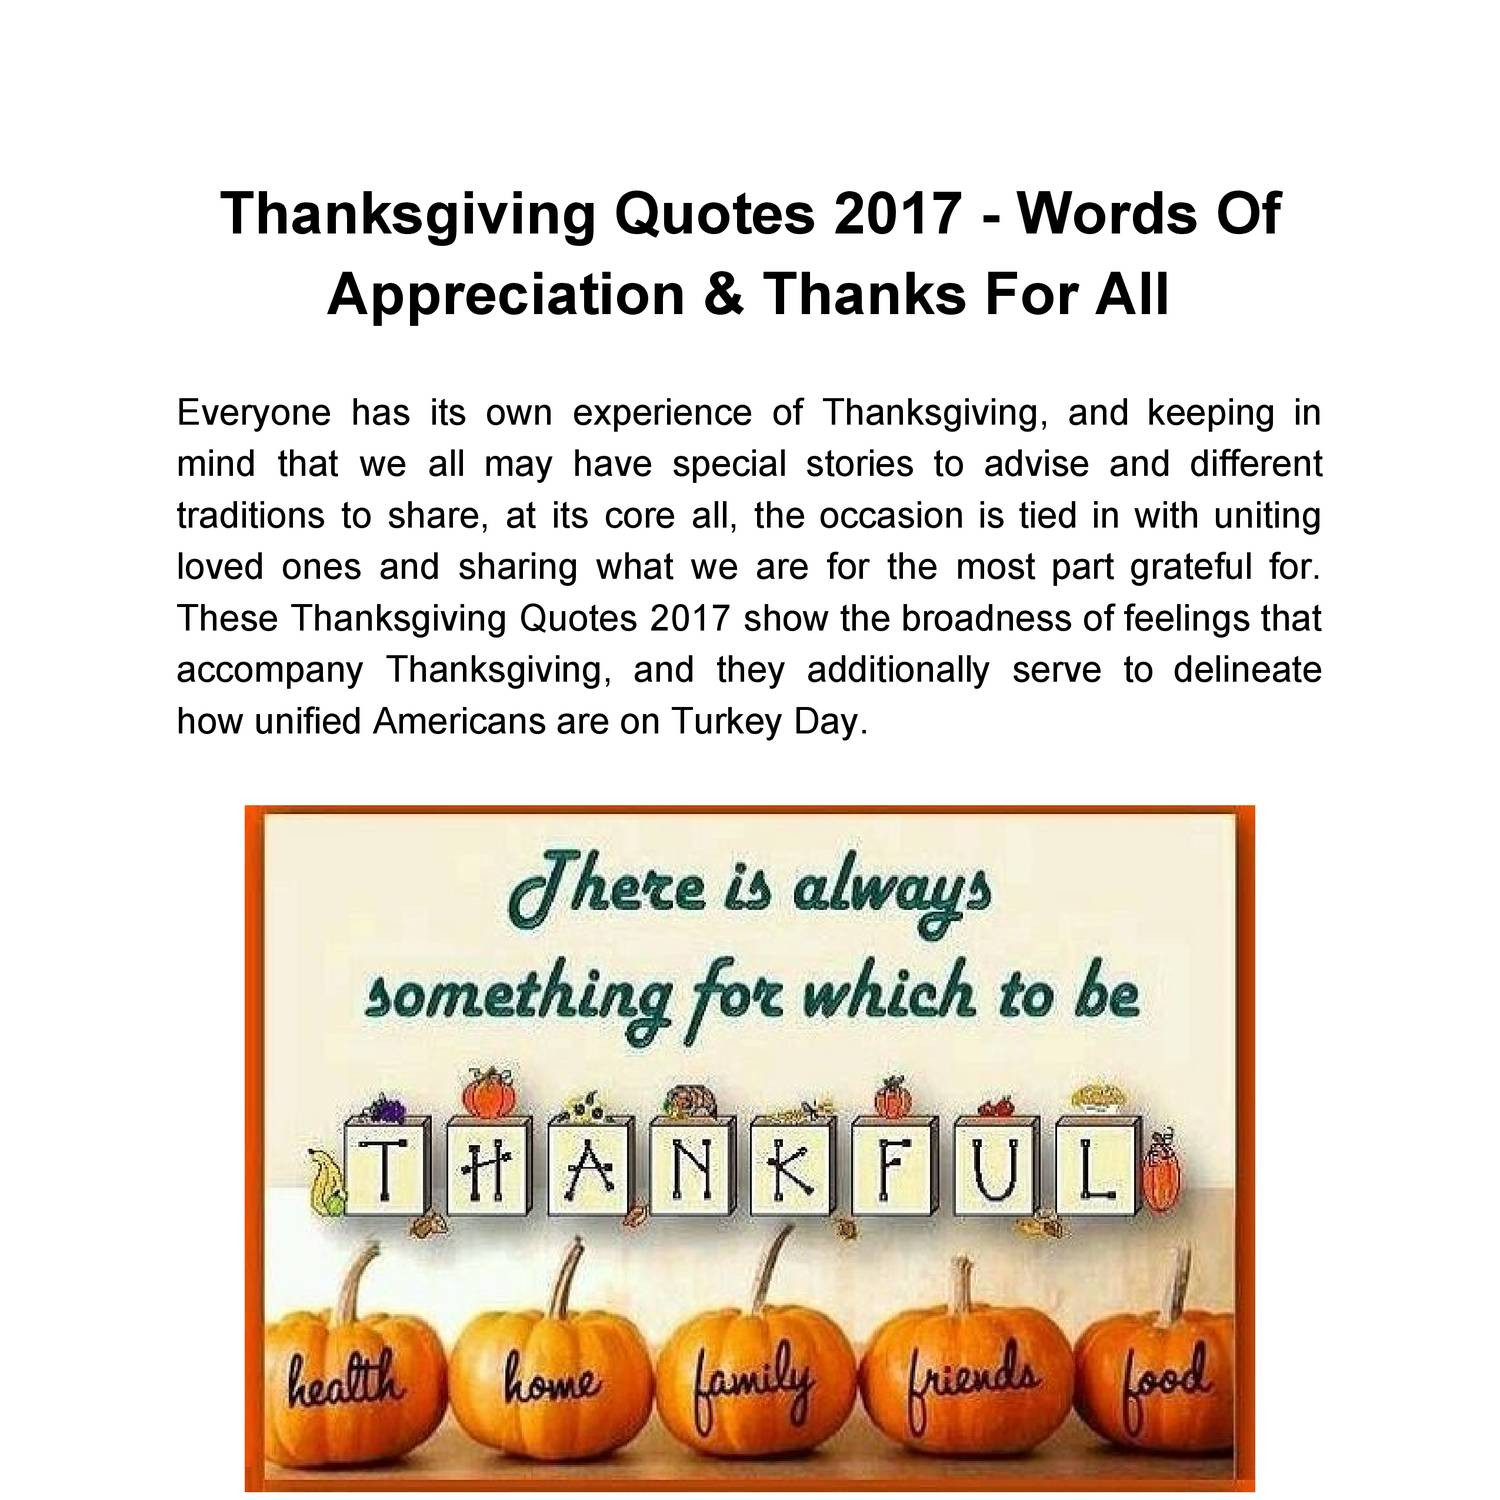 Words Of Thanks And Appreciation Quotes: Words Of Appreciation & Thanks